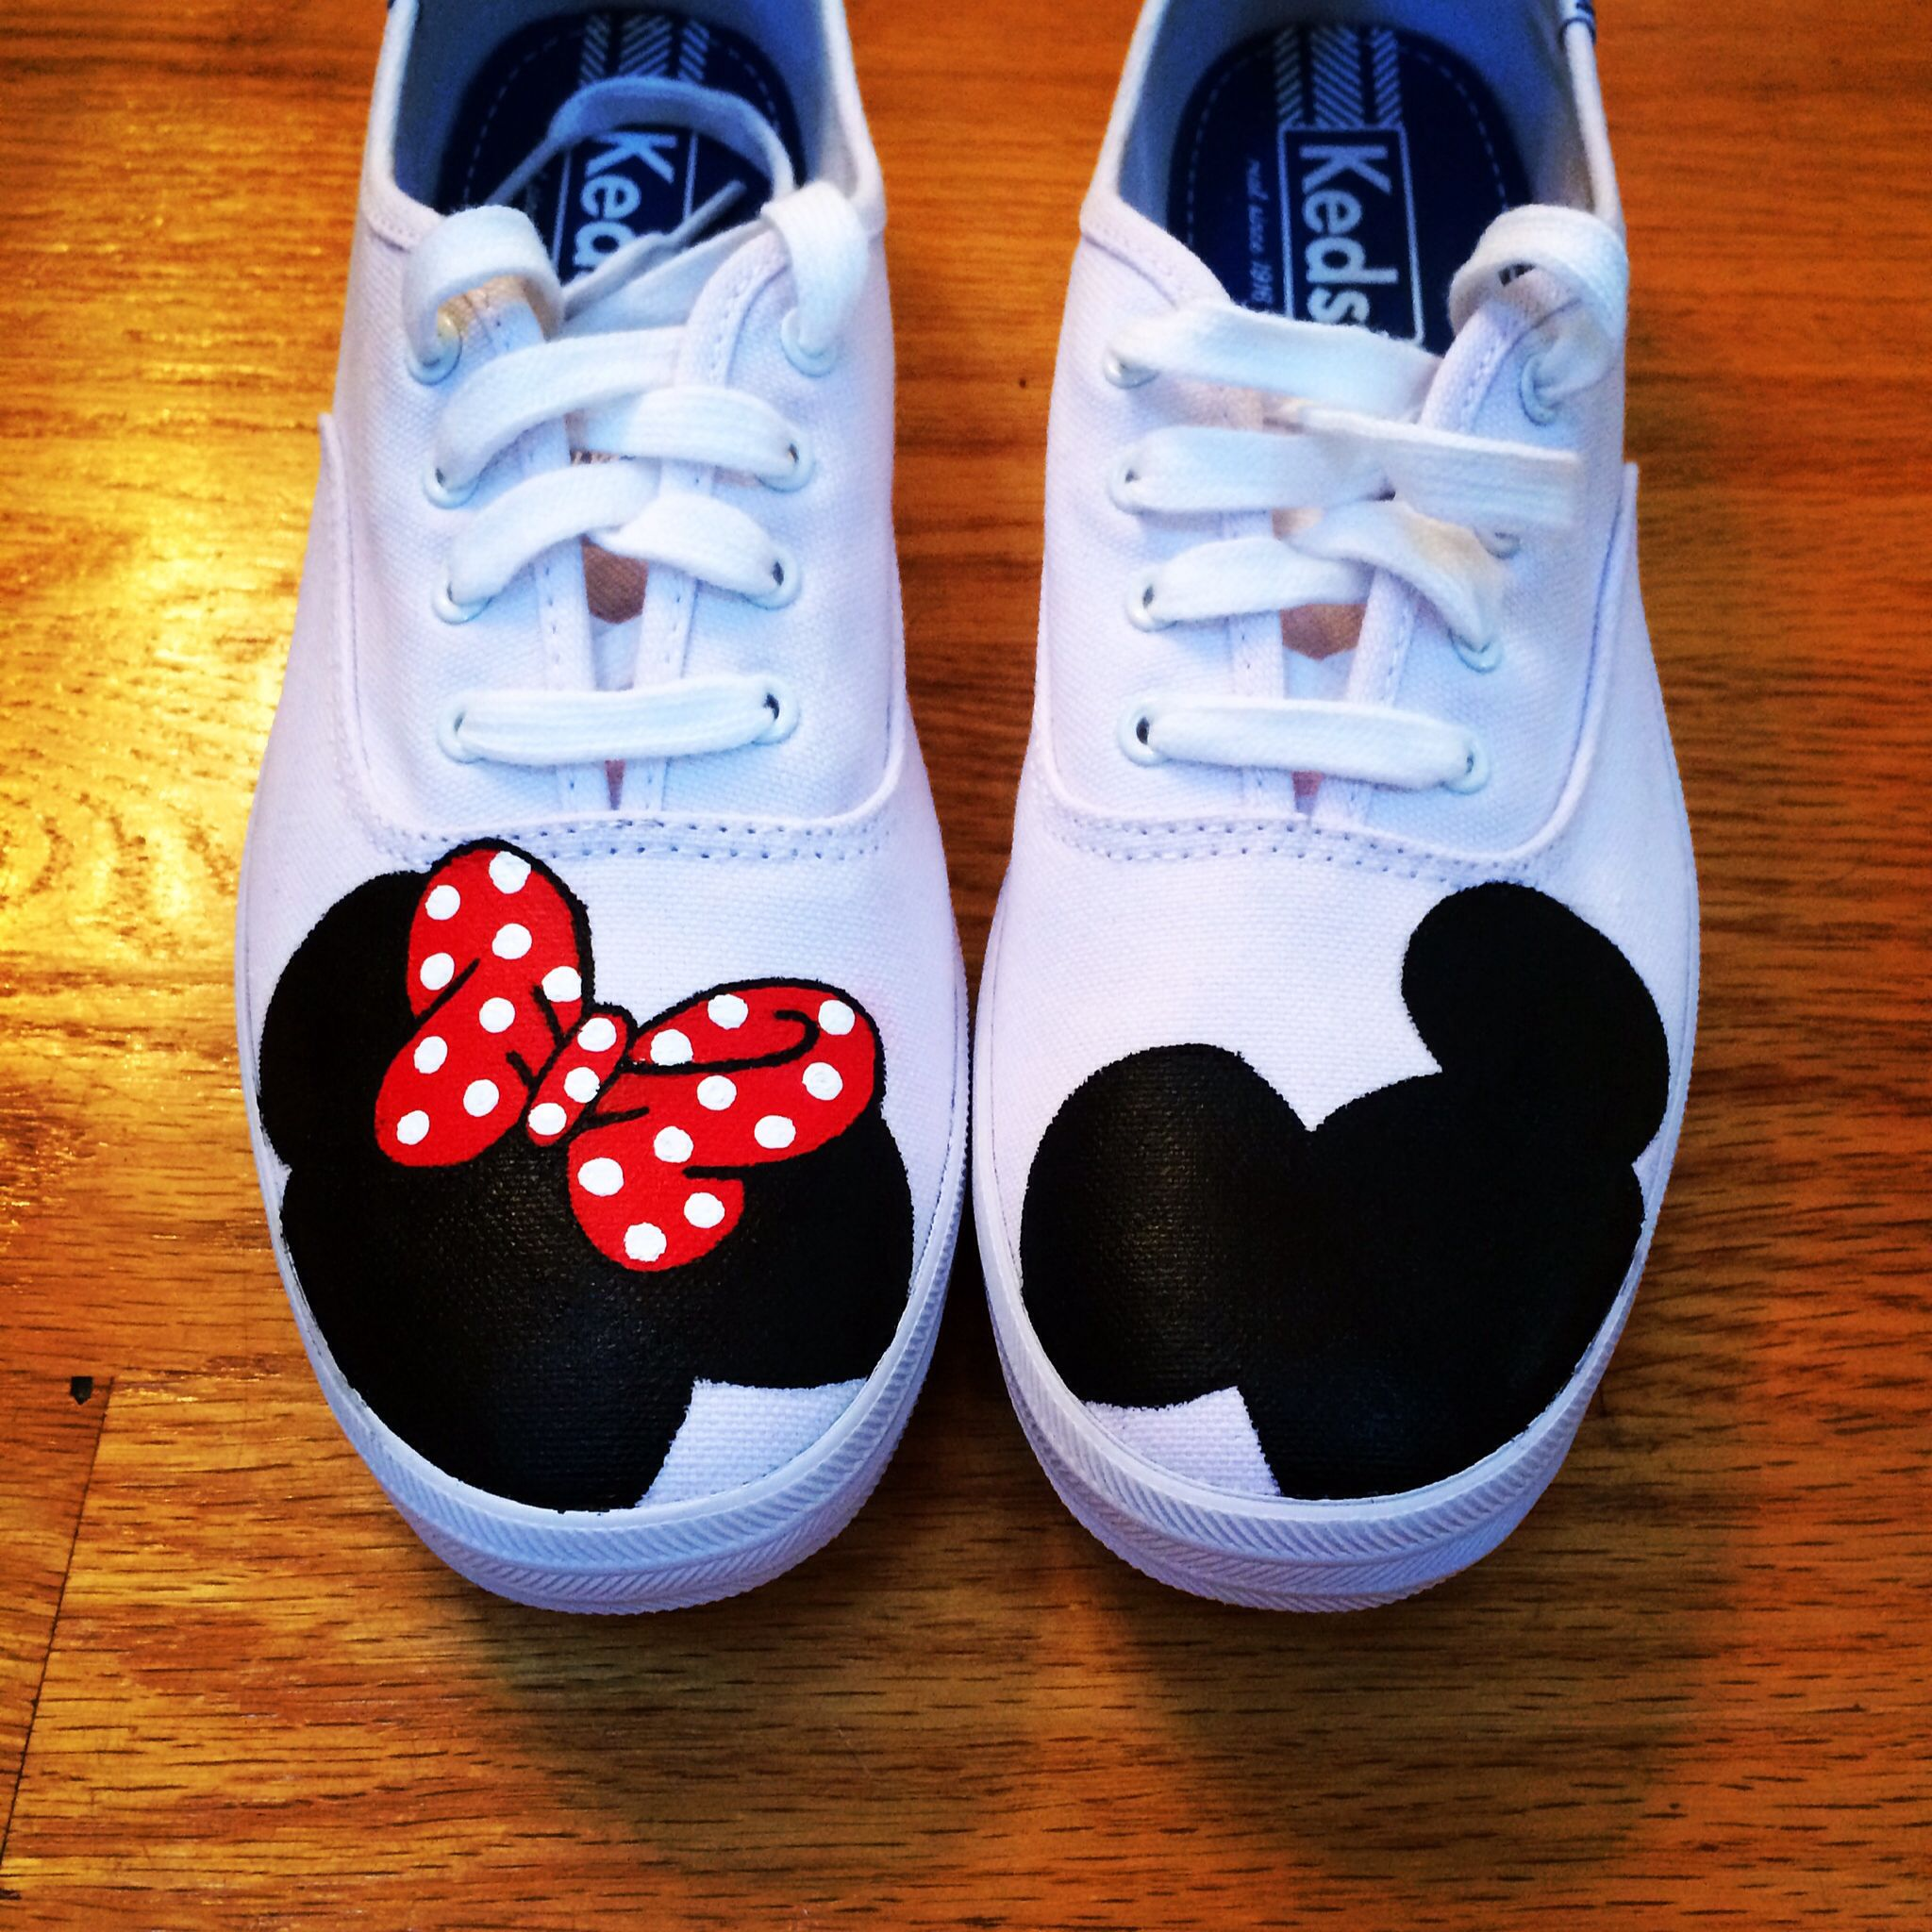 dff90225fdb3 ... pintados a mano de princesas. Hand painted Minnie and Mickey Mouse s  head on my keds sneakers for disney!! More